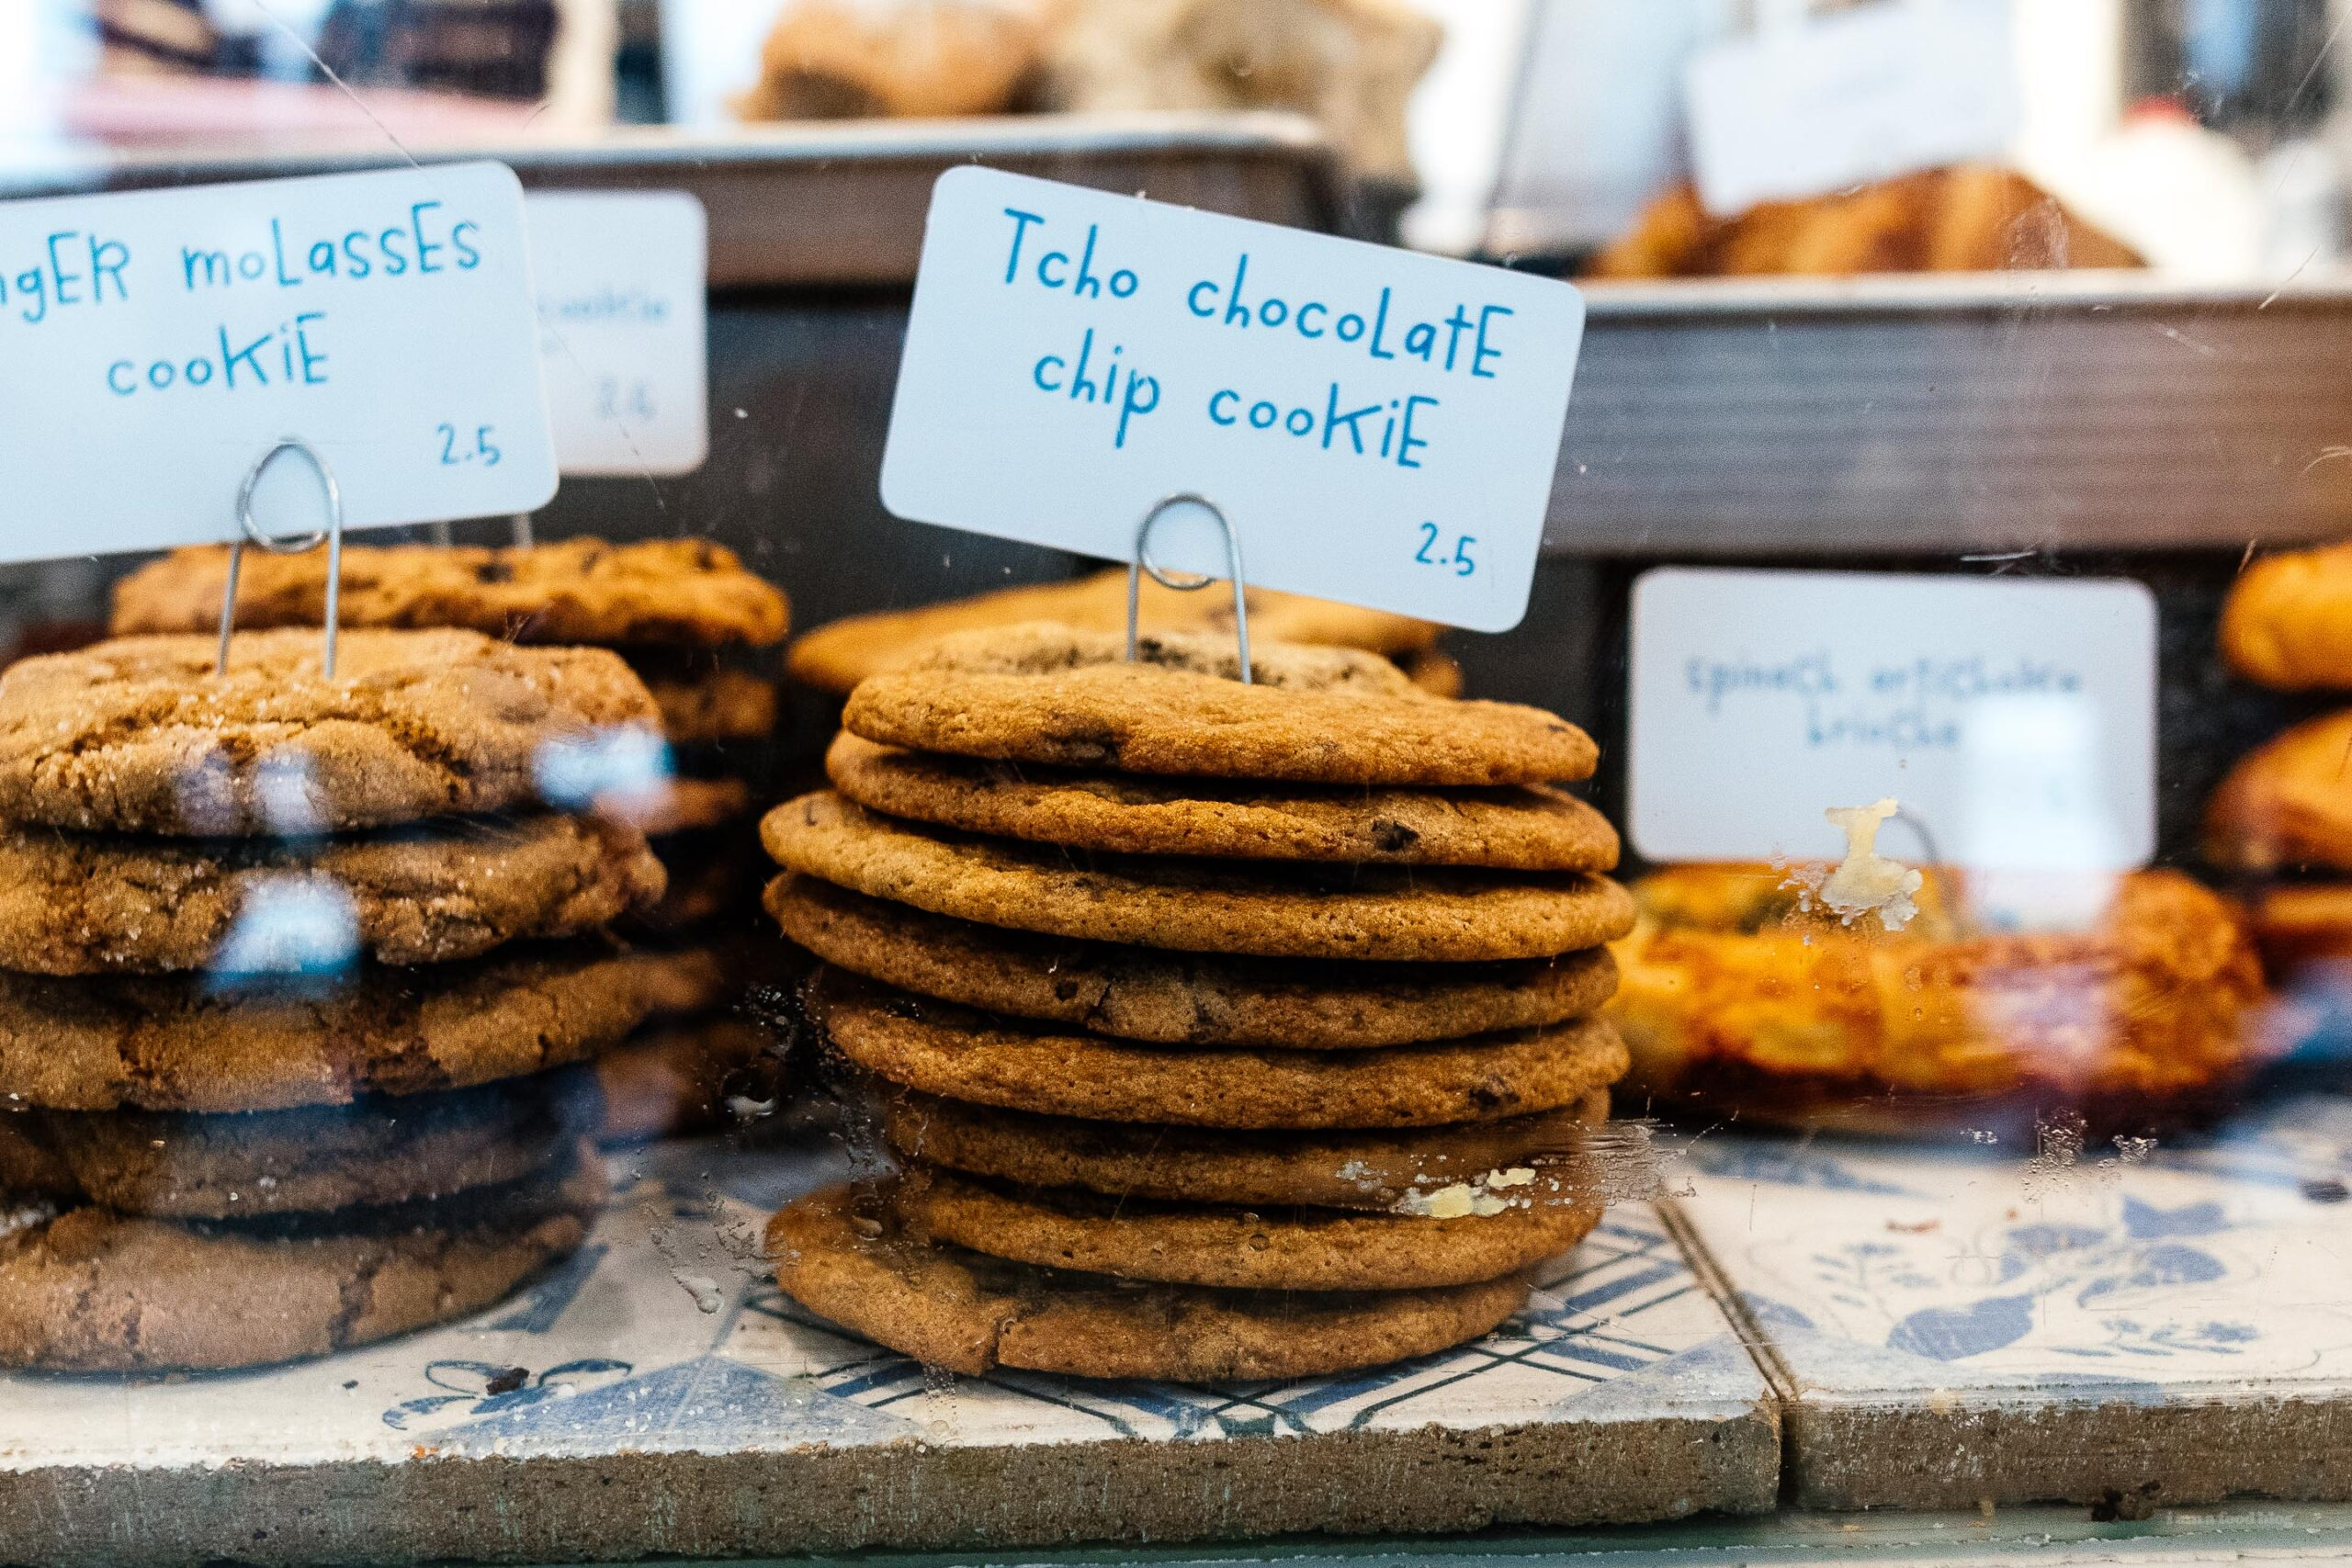 The Search for the Best Chocolate Chip Cookie in the World